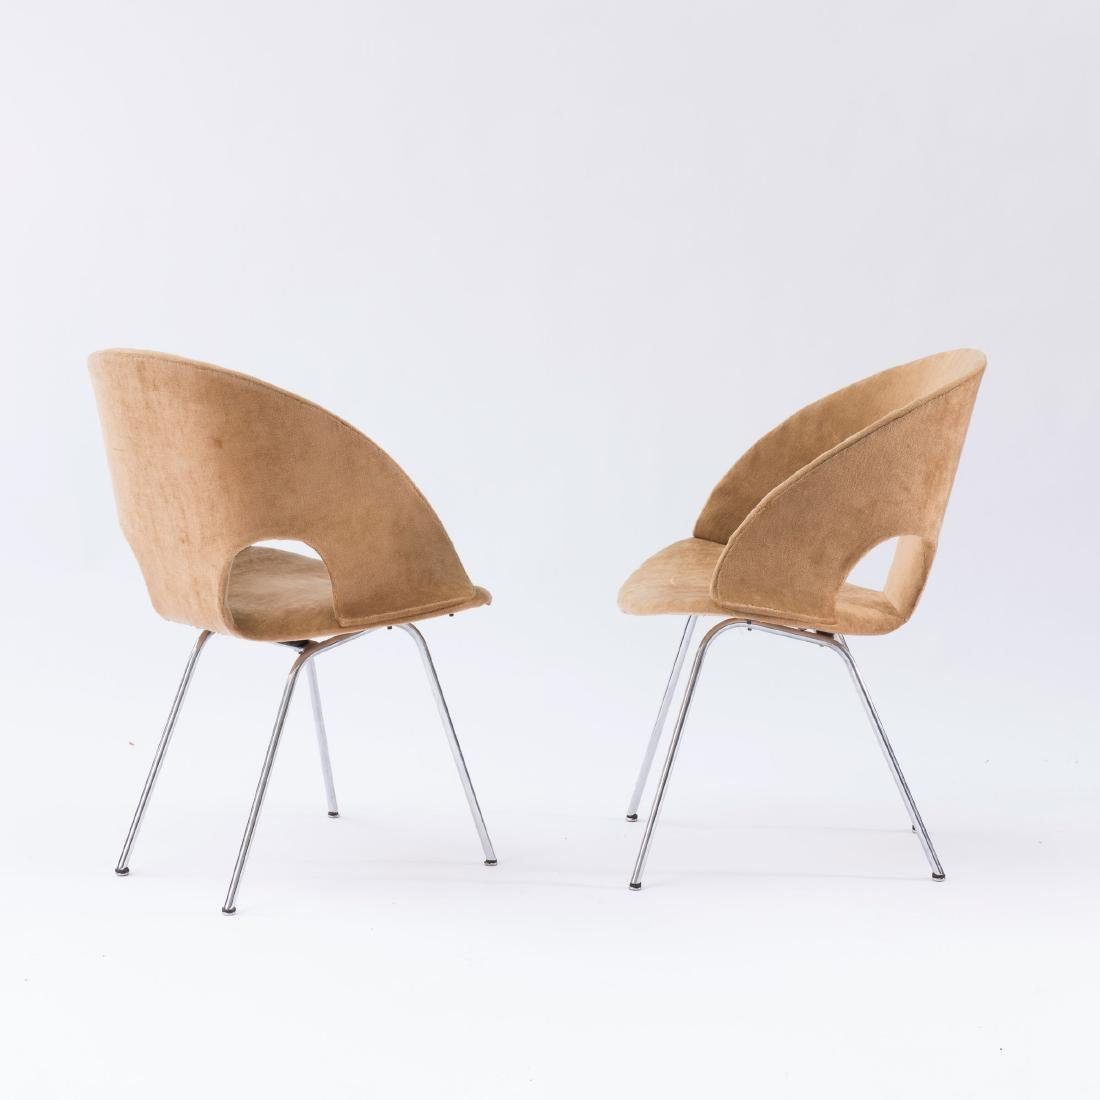 Two '350' armchairs, 1957 - 2